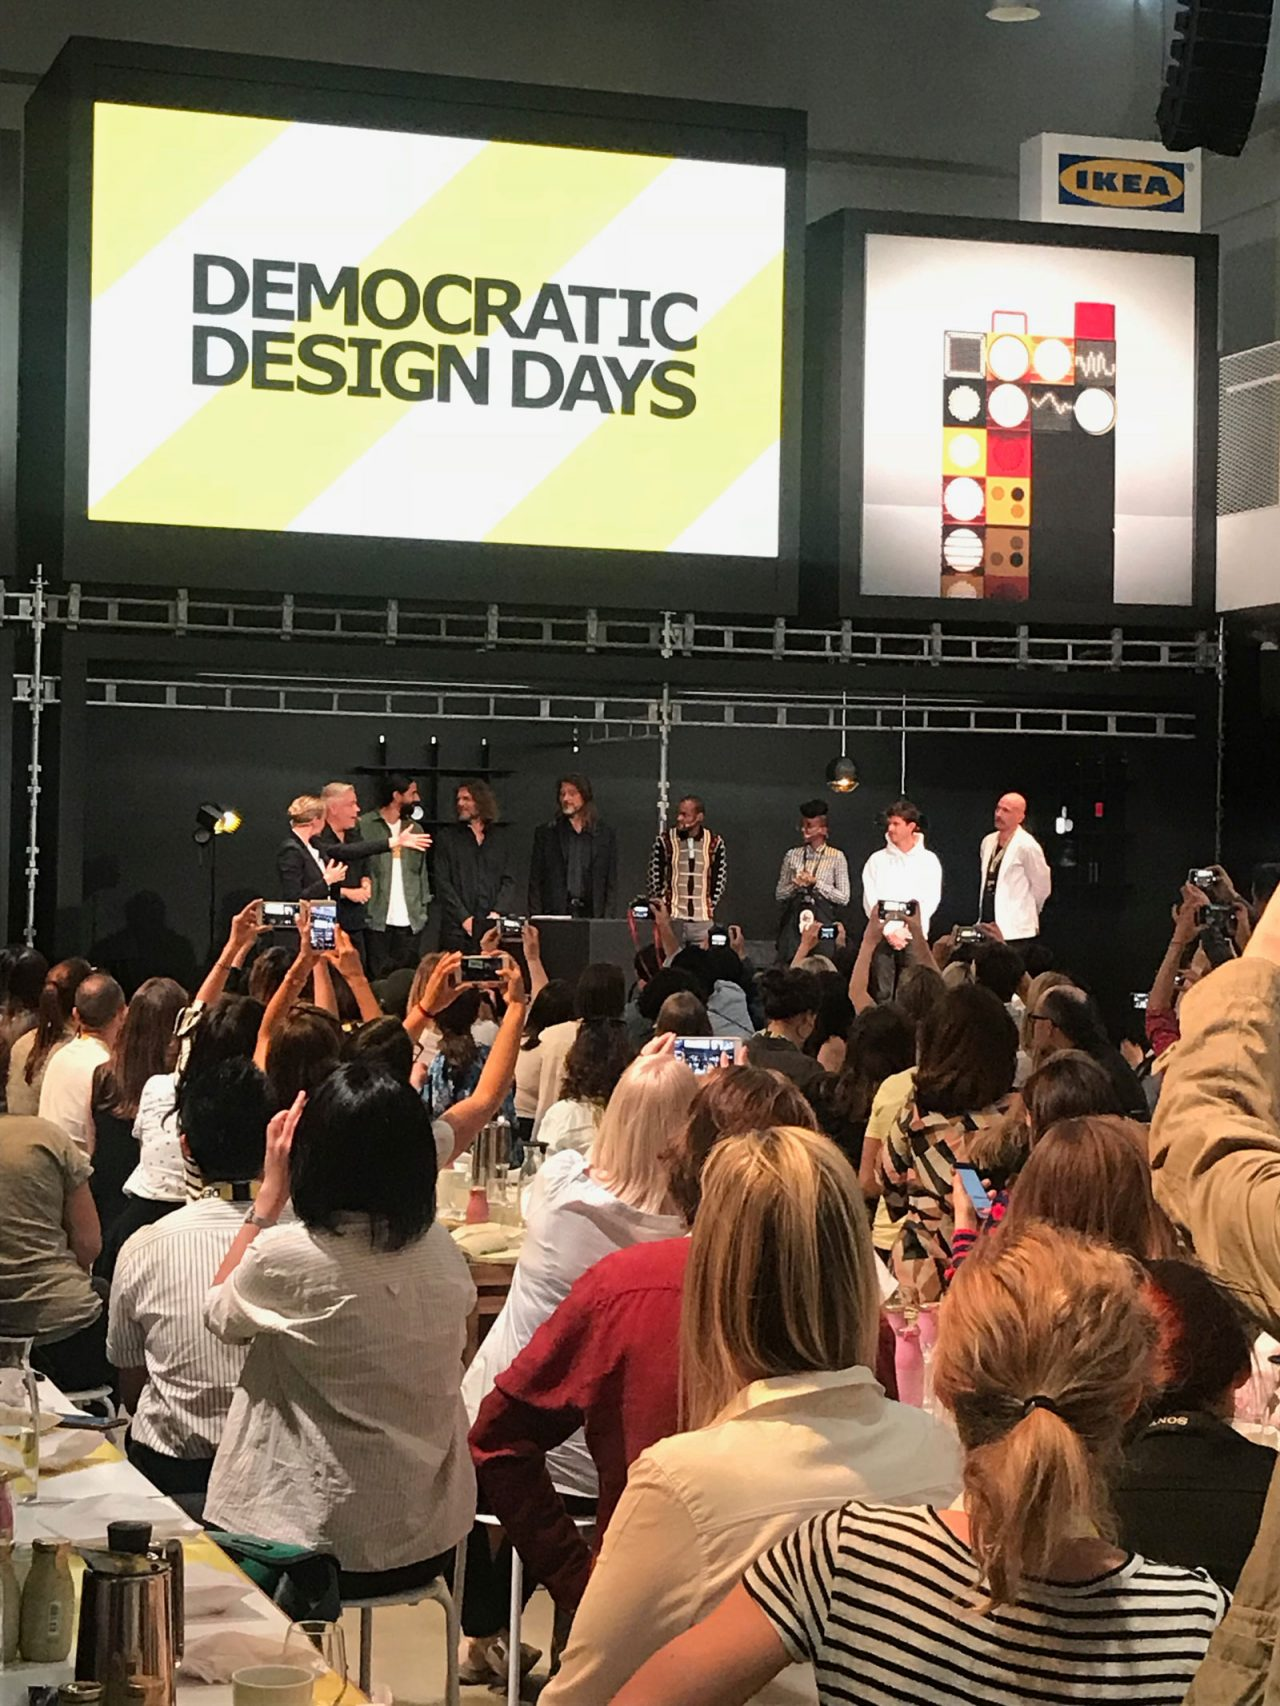 Ikea-Democratic-Design-Days-2018